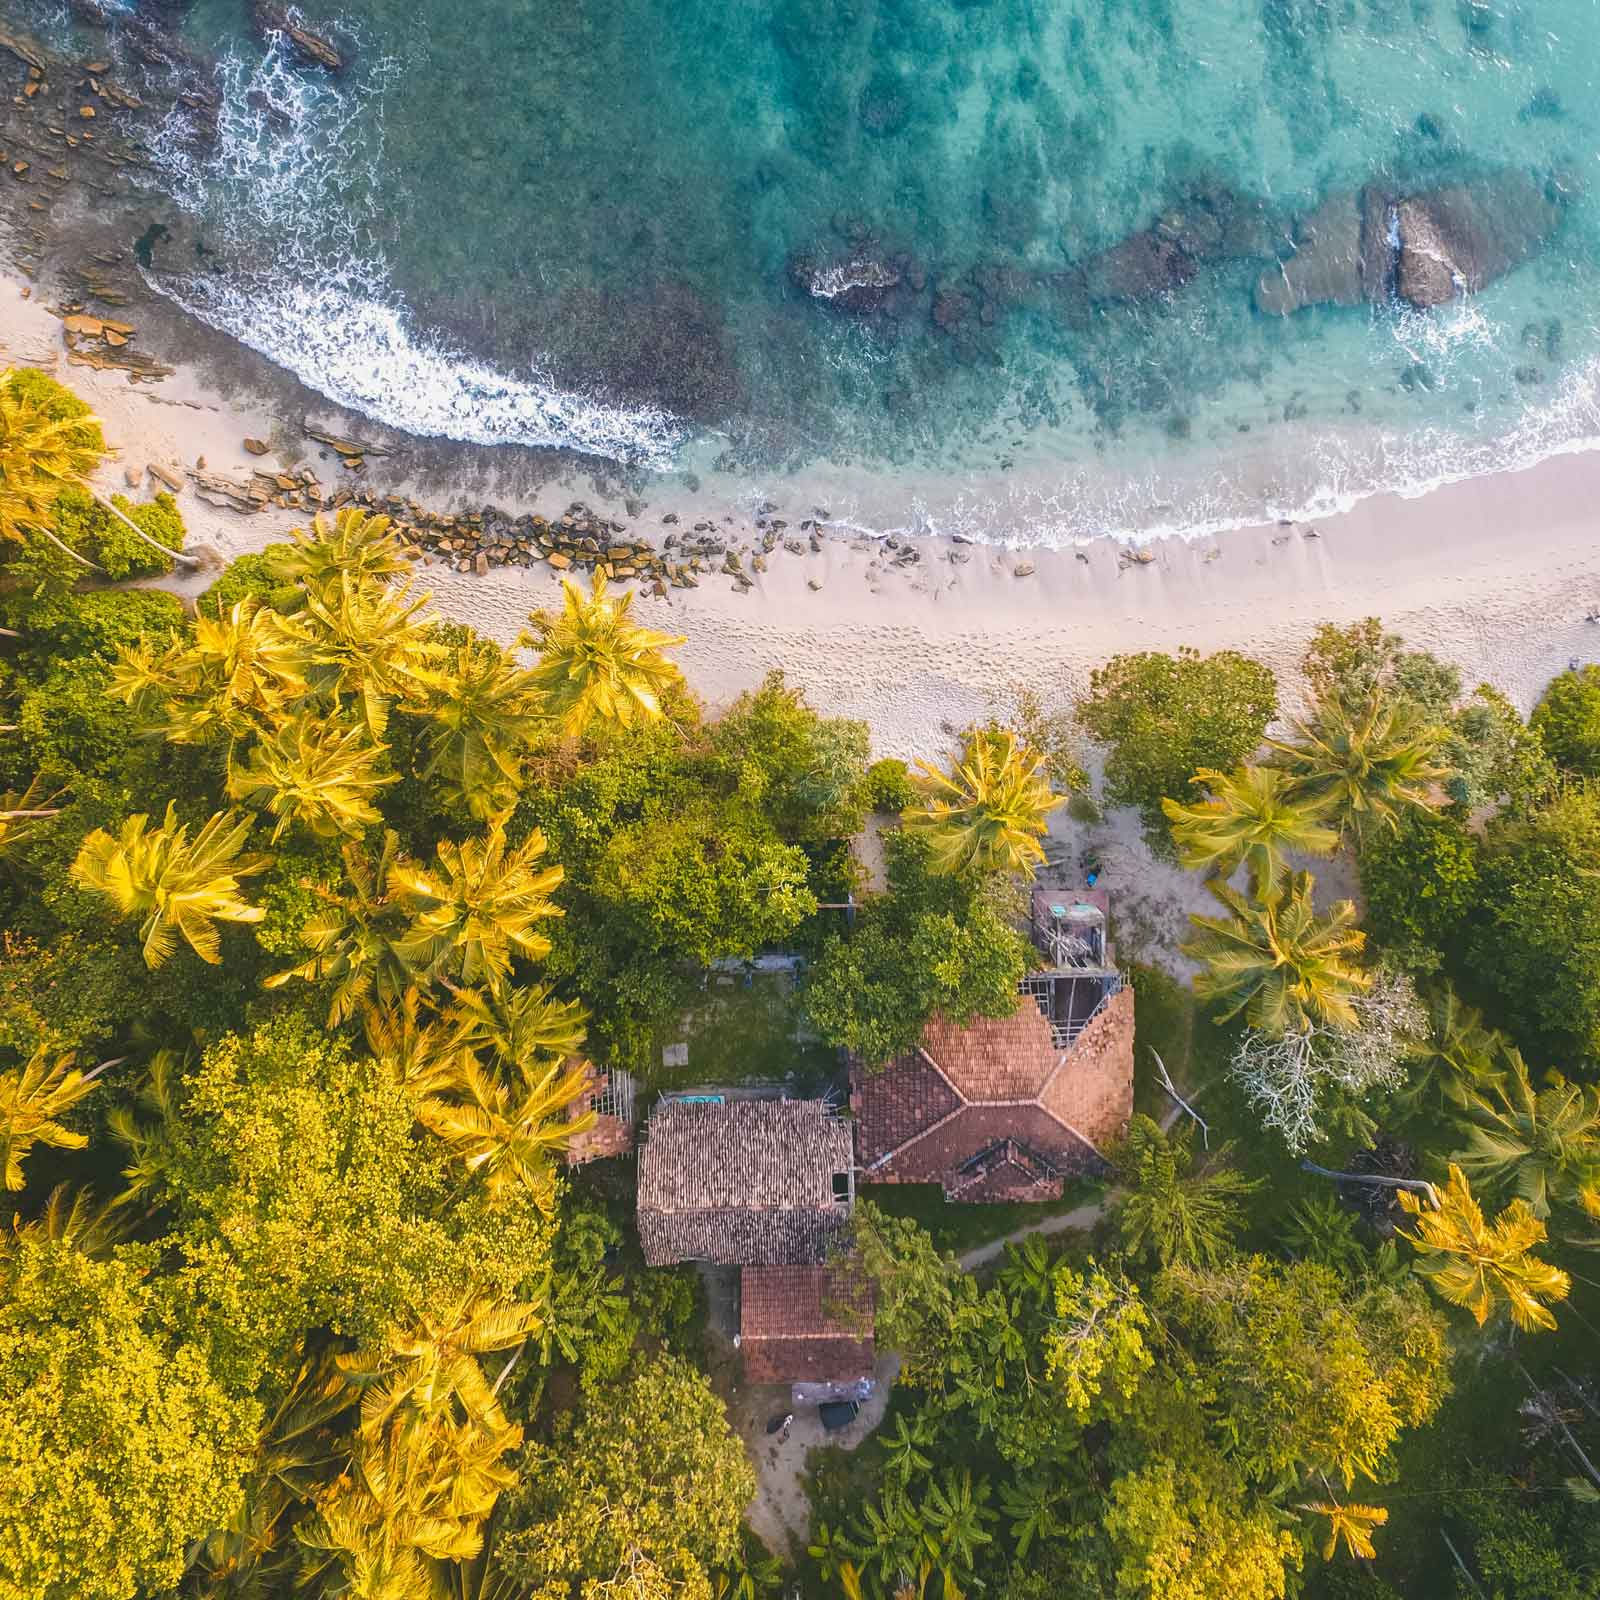 Aerial photo of the roof of a house amidst palm trees and a rocky beach with turquoise waters.